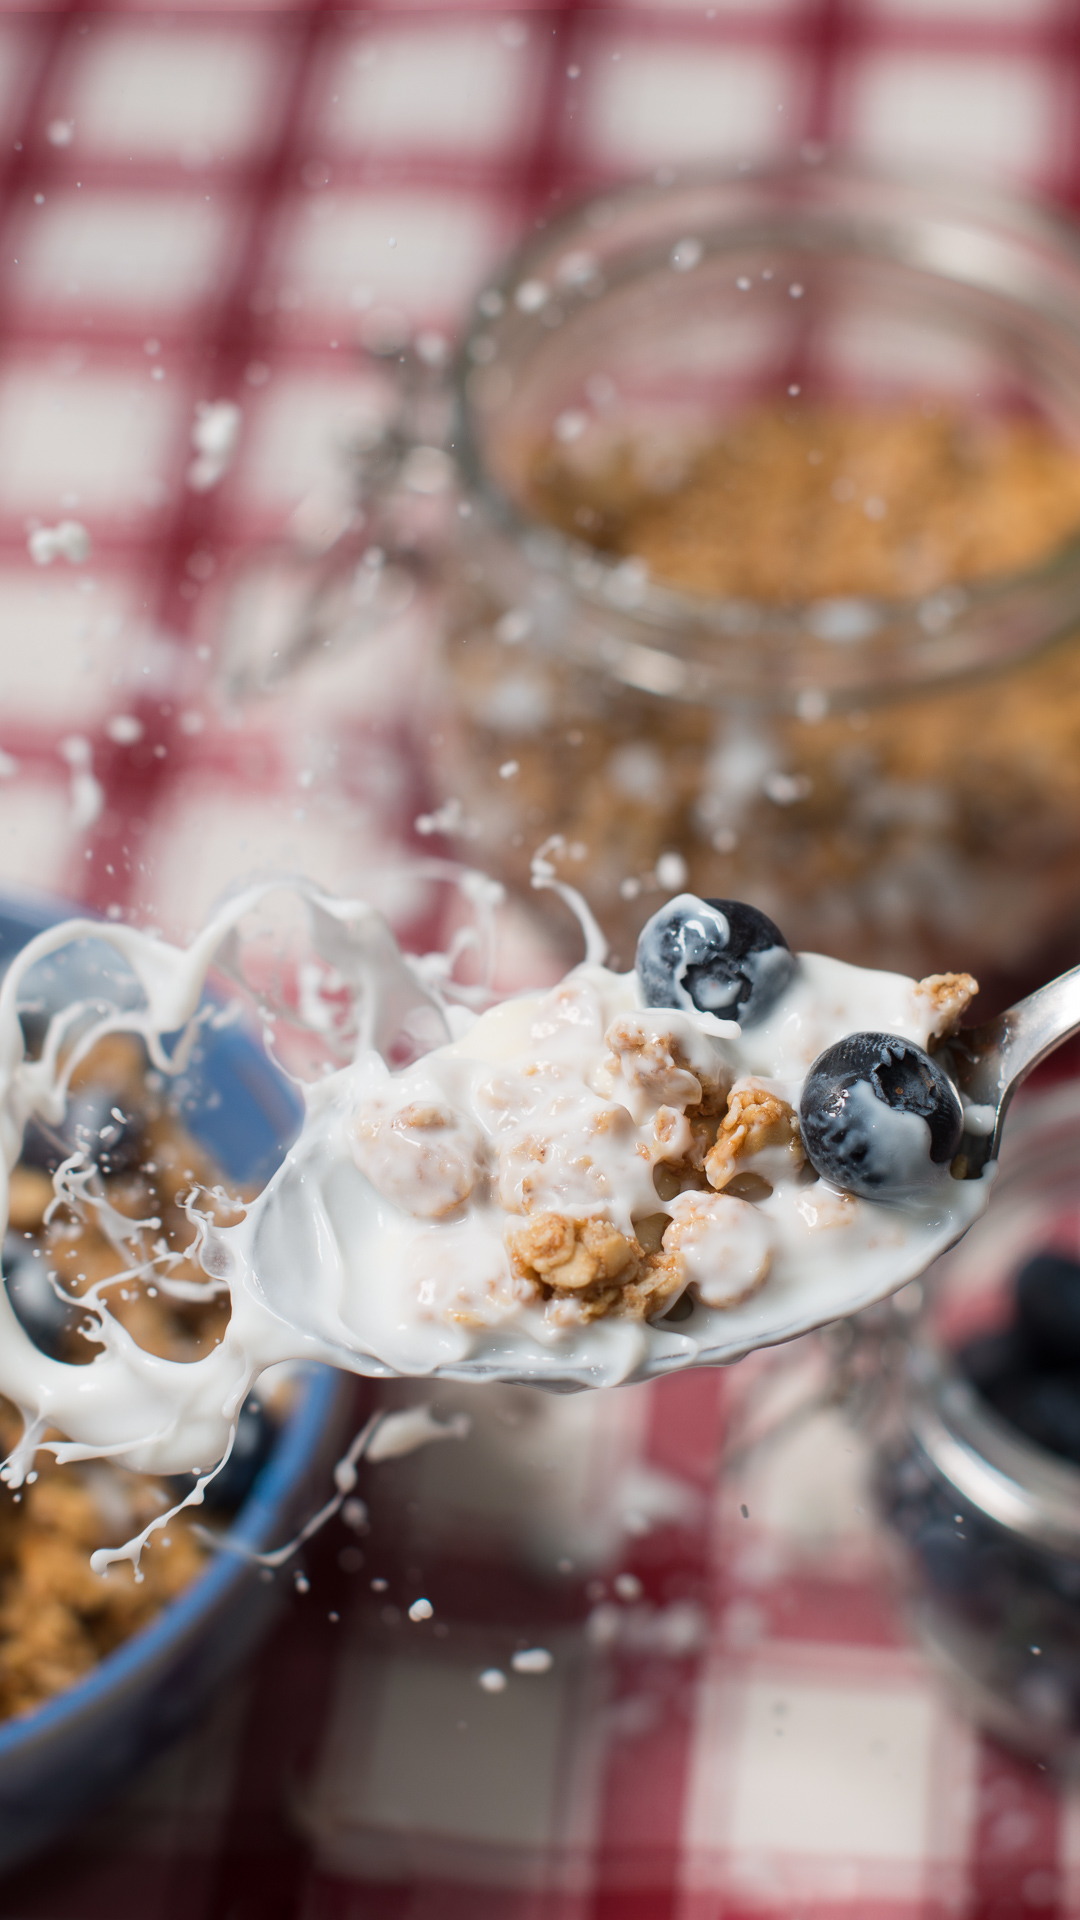 Cereal splash food and beverage photography